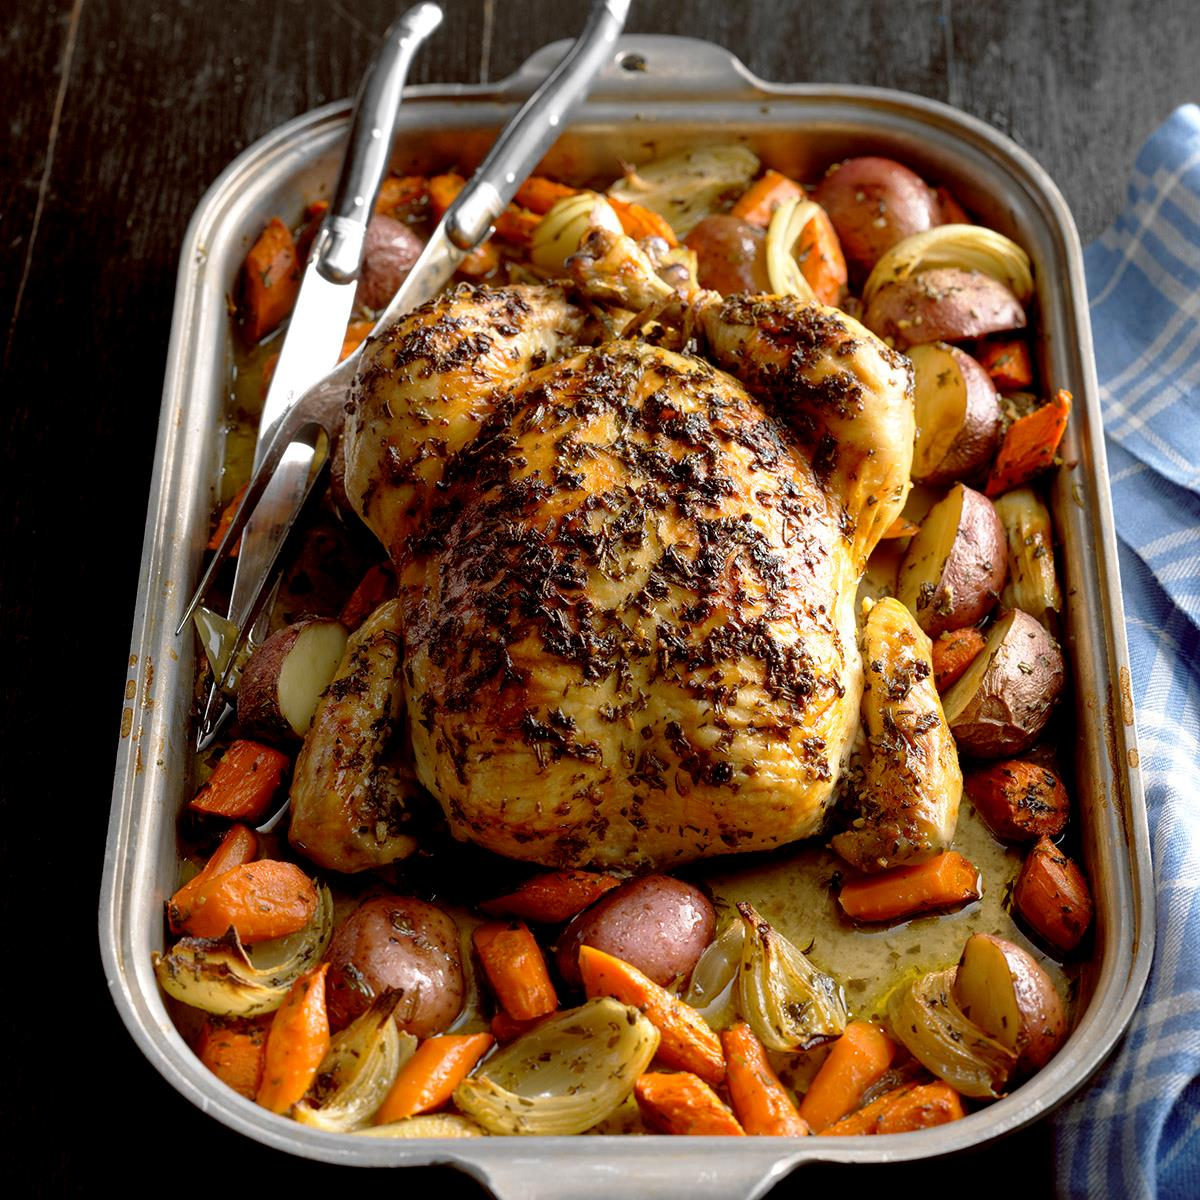 Roasted Chicken With Rosemary Recipe How To Make It Taste Of Home